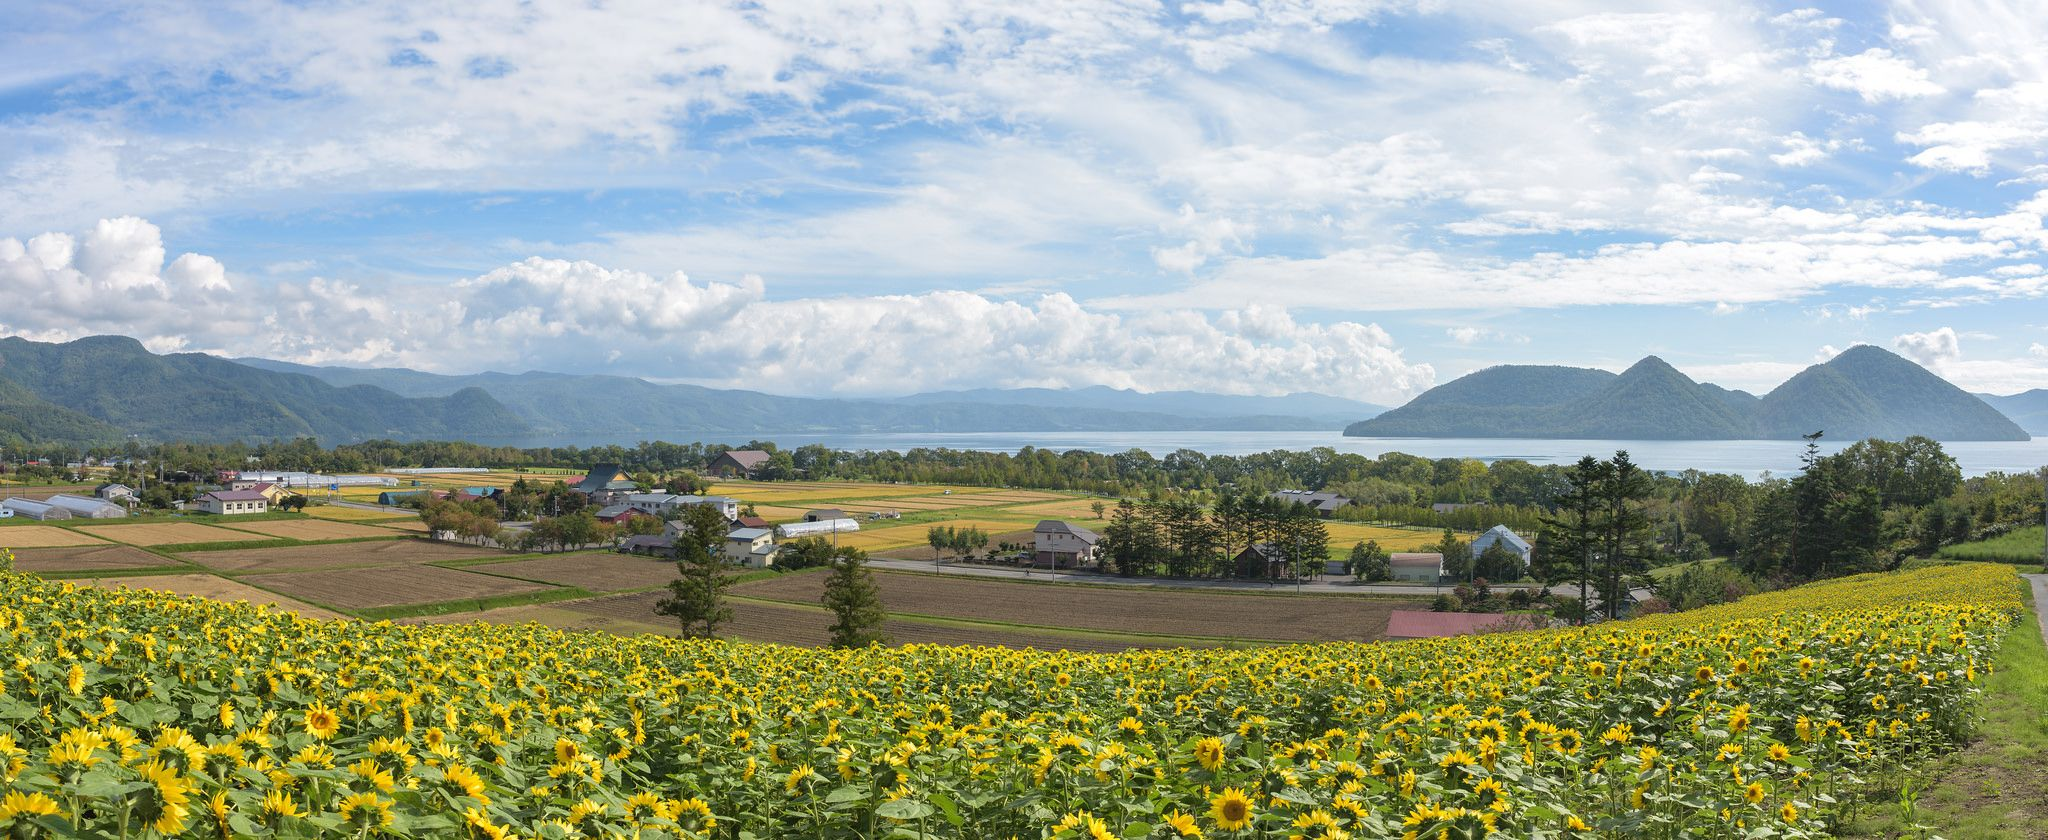 https://flic.kr/p/MxjWXZ | Sunflowers and Lake Toya | Copyright © 2016 Kris Gaethofs - All rights reserved